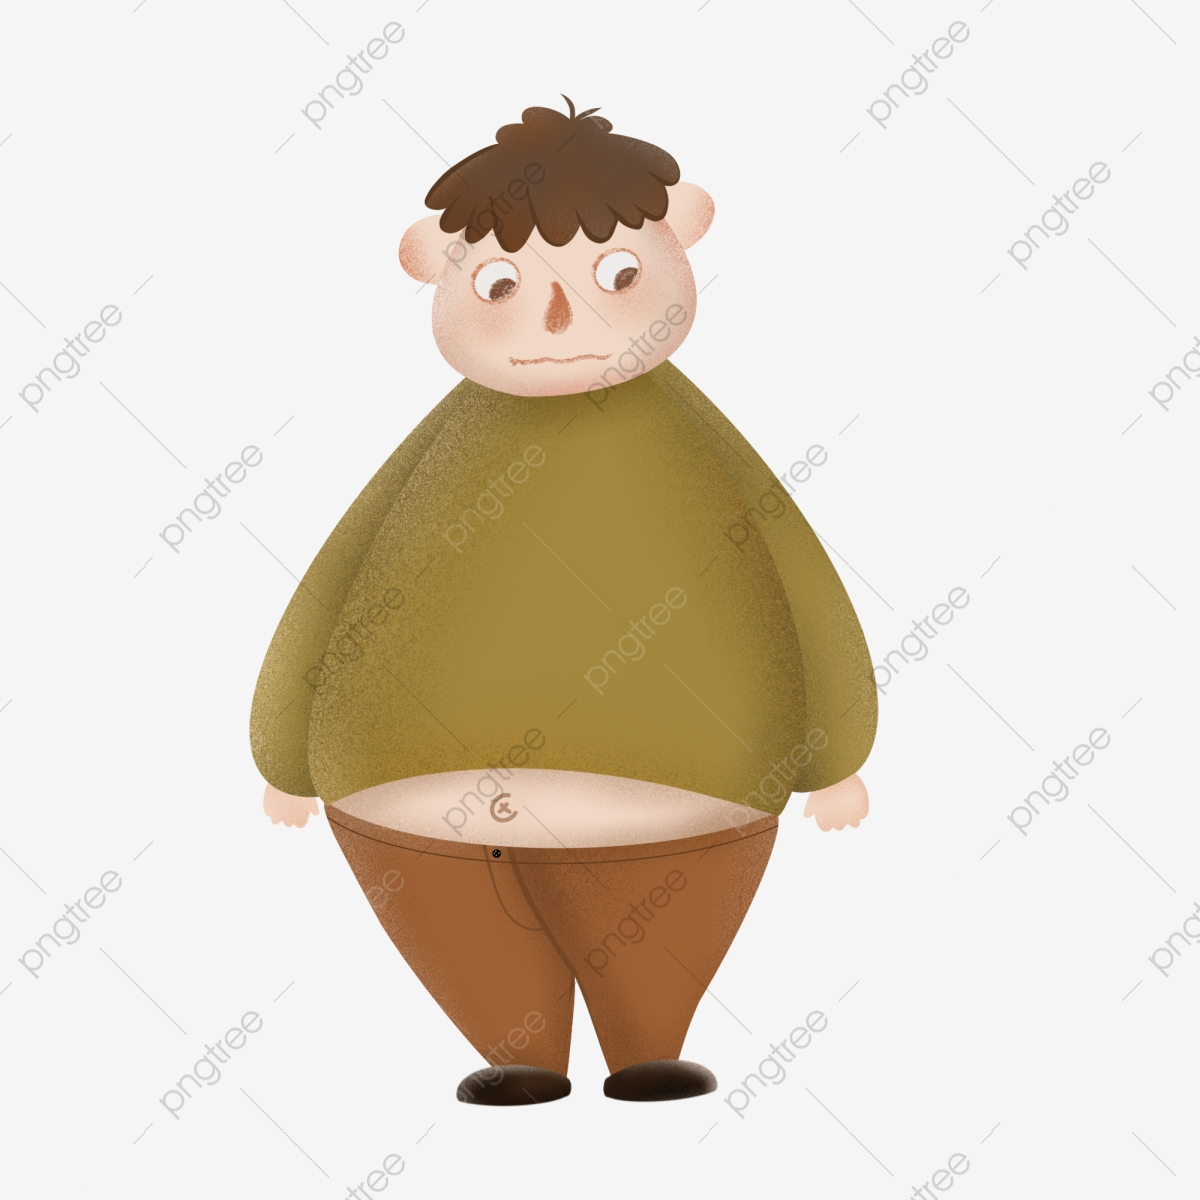 obesity png images vector and psd files free download on pngtree https pngtree com freepng obese characters hand painted noise style 4392408 html